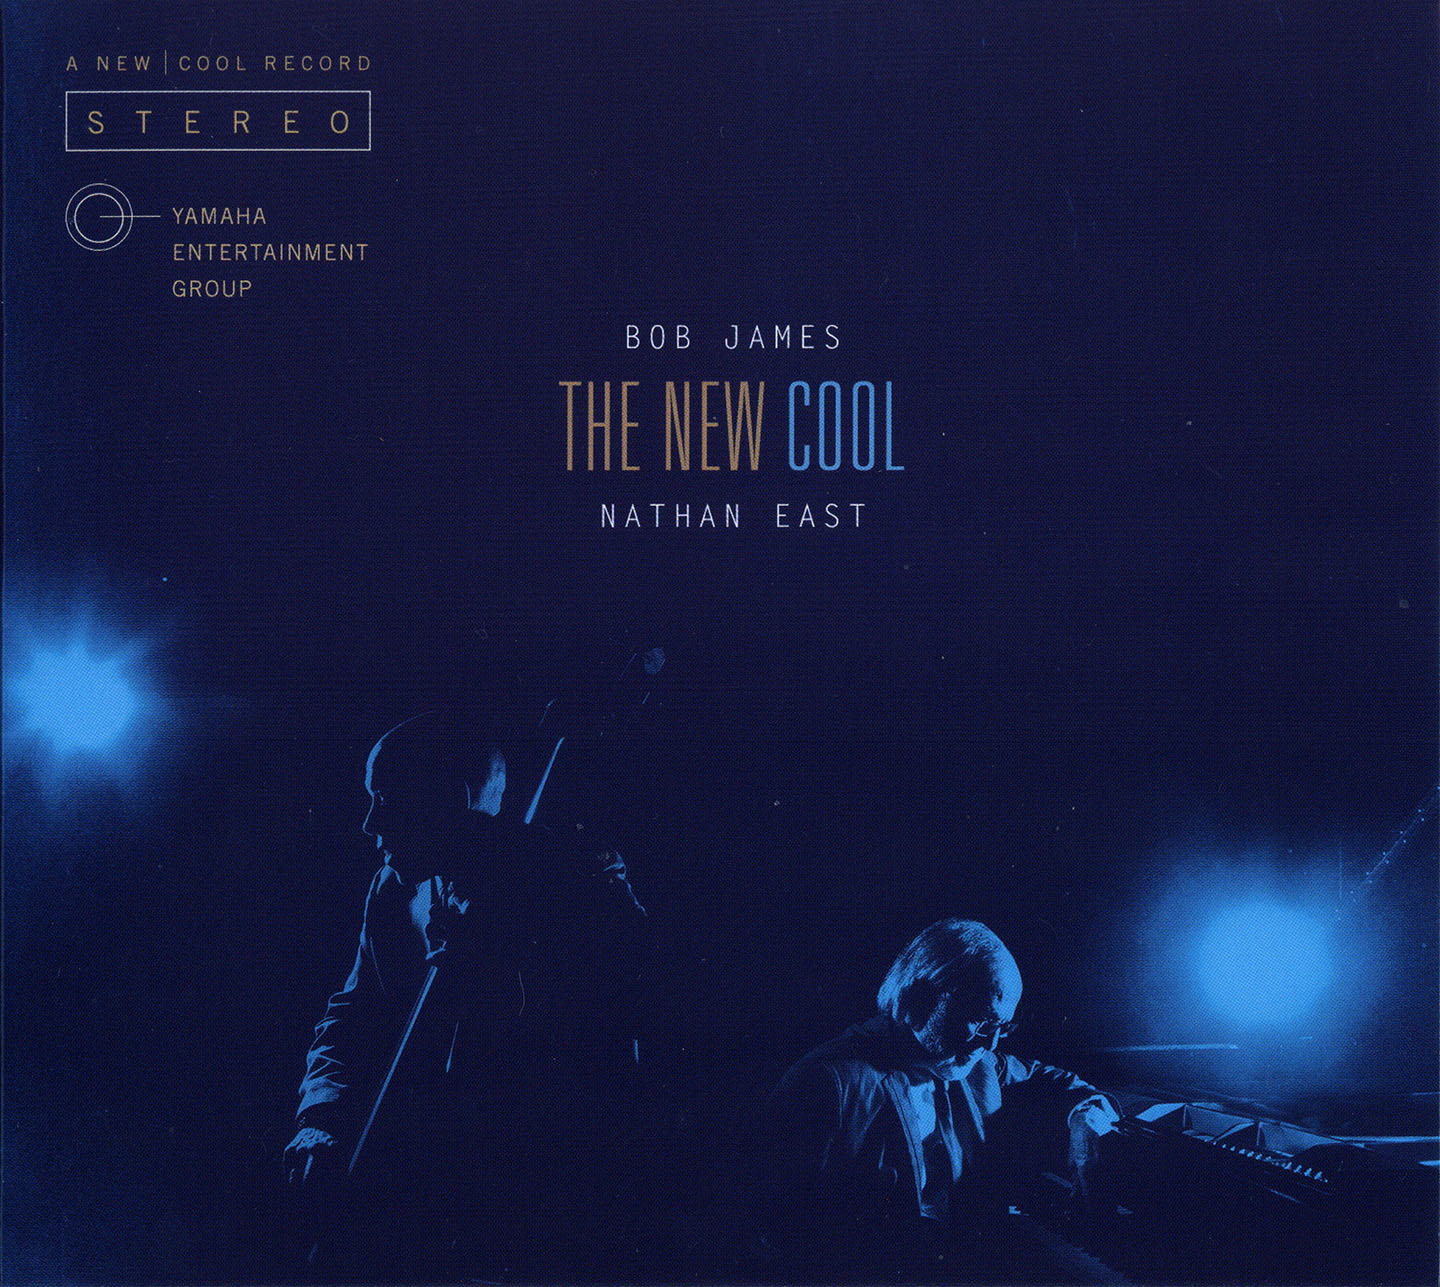 Bob James & Nathan East - The New Cool (2015) Japanese Edition [Re-Up]